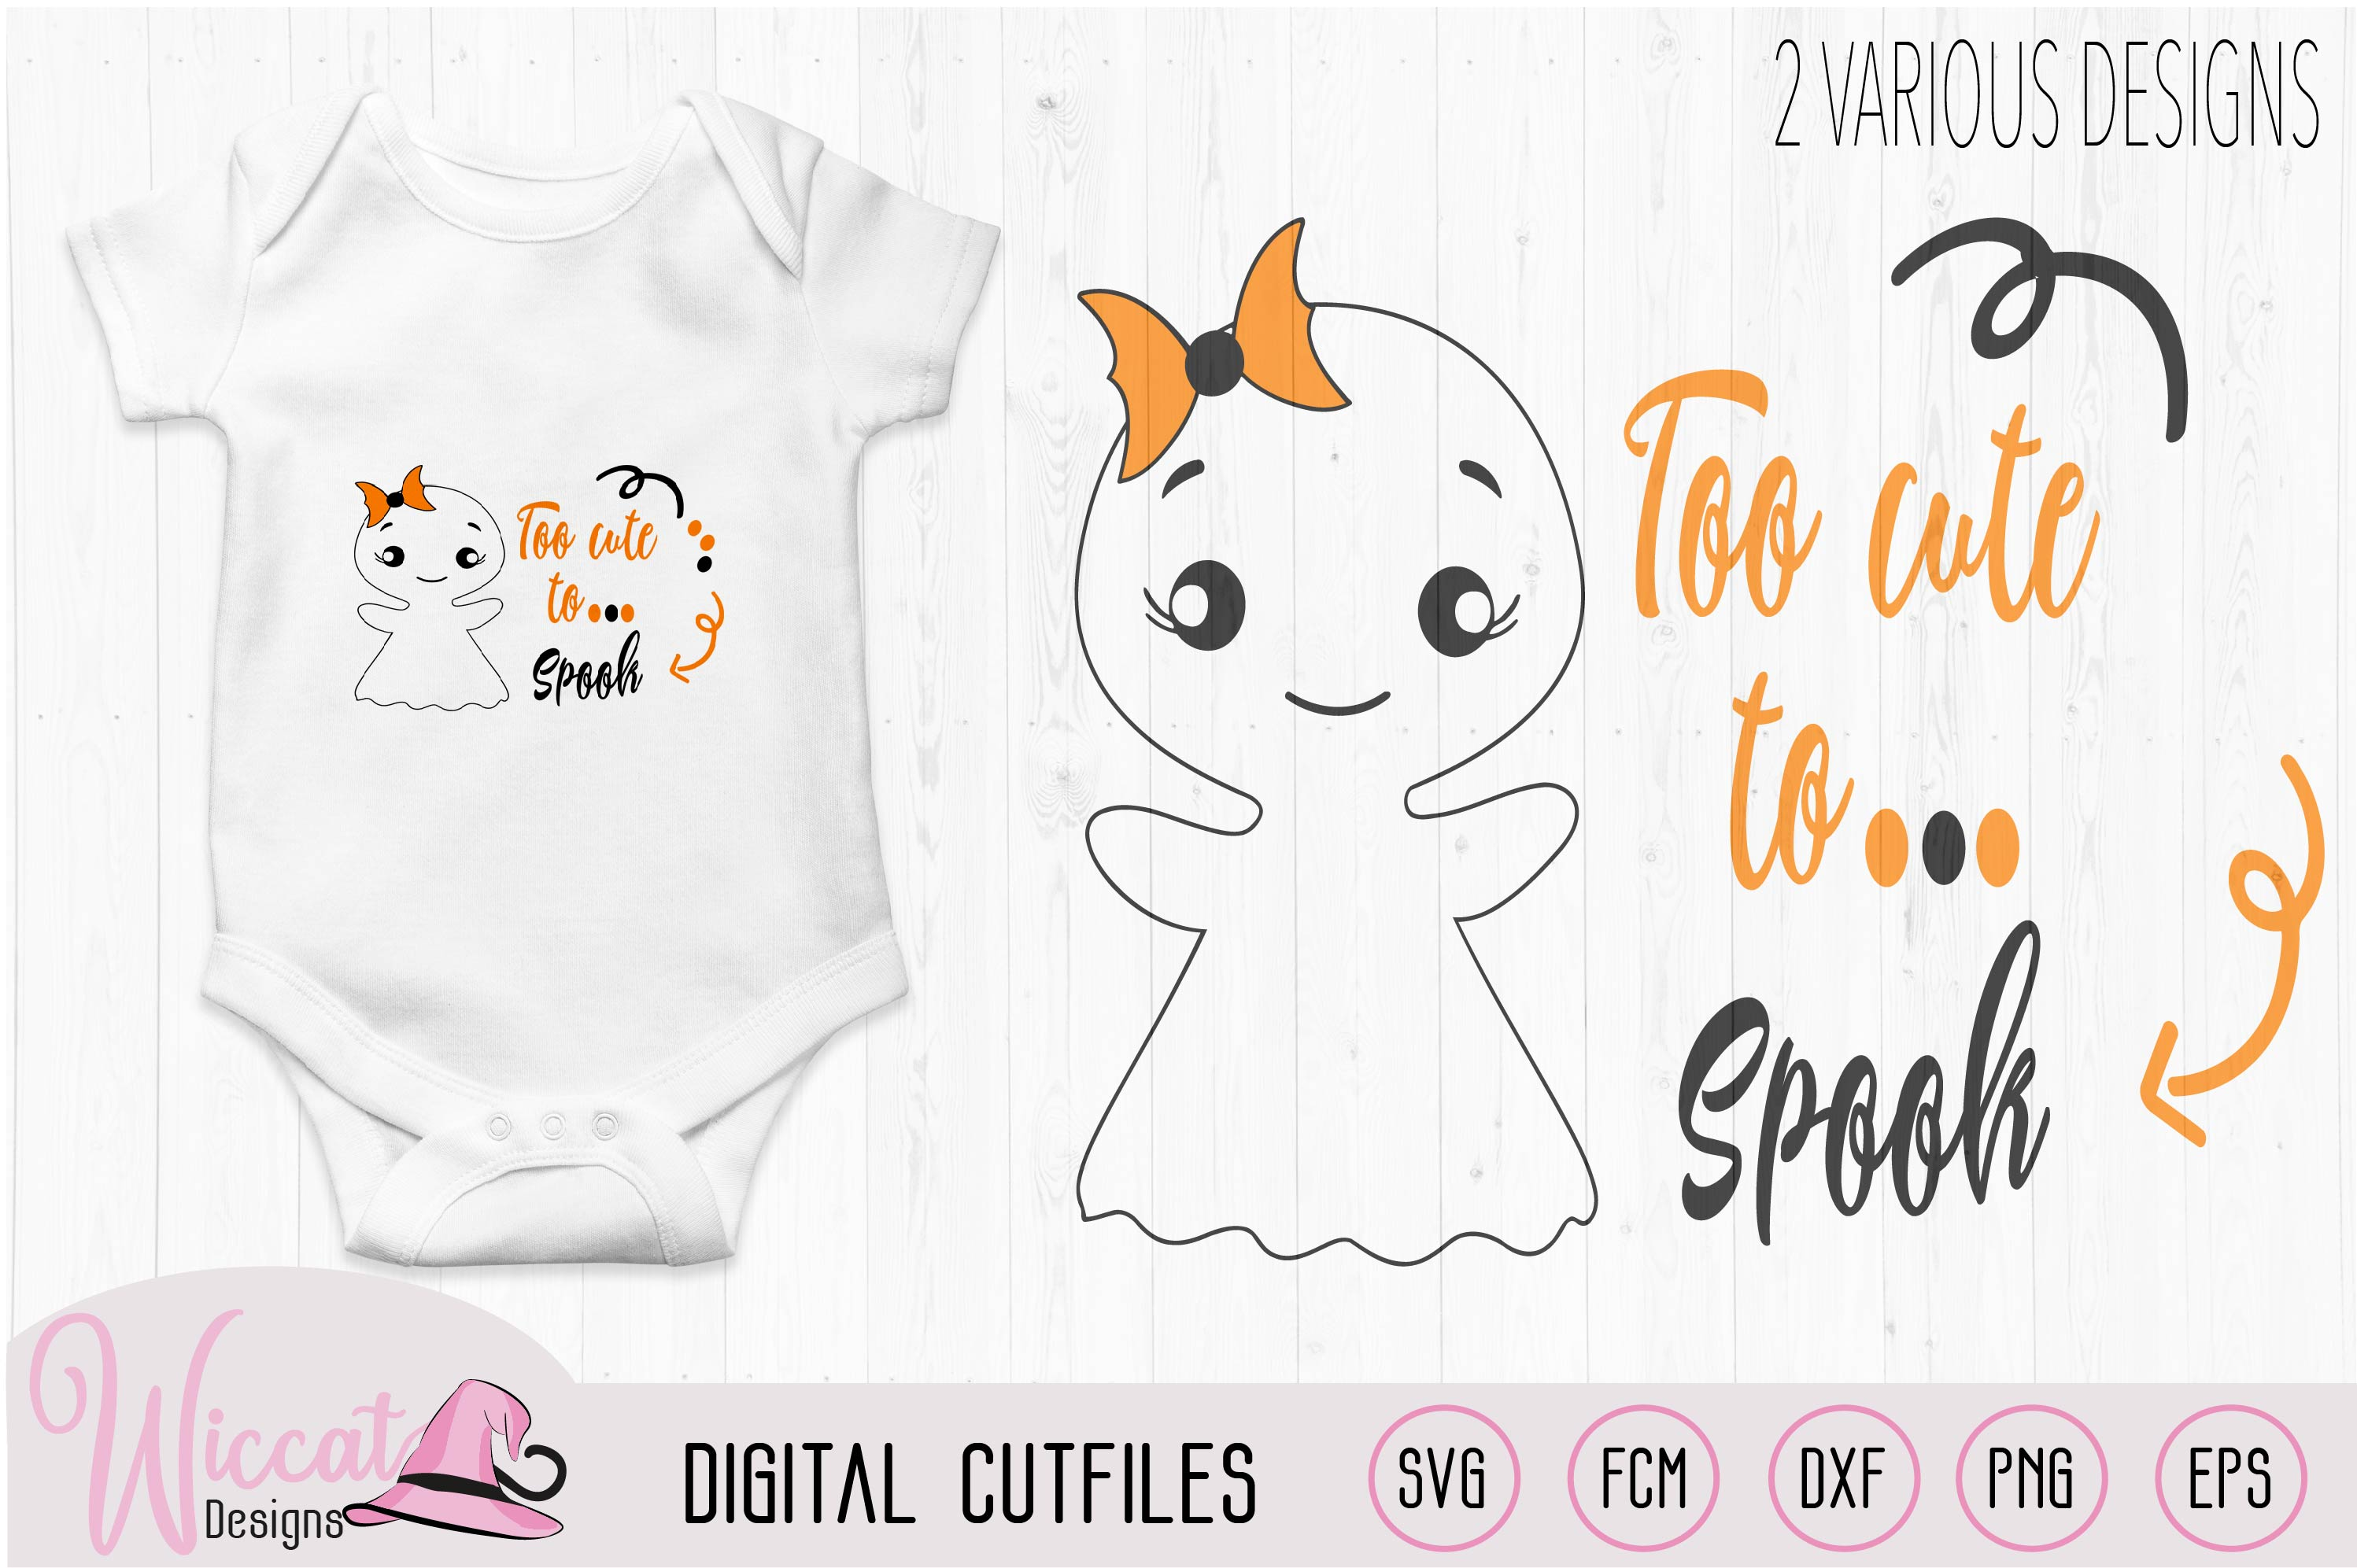 Too Cute to spook, Cute ghost quote example image 2